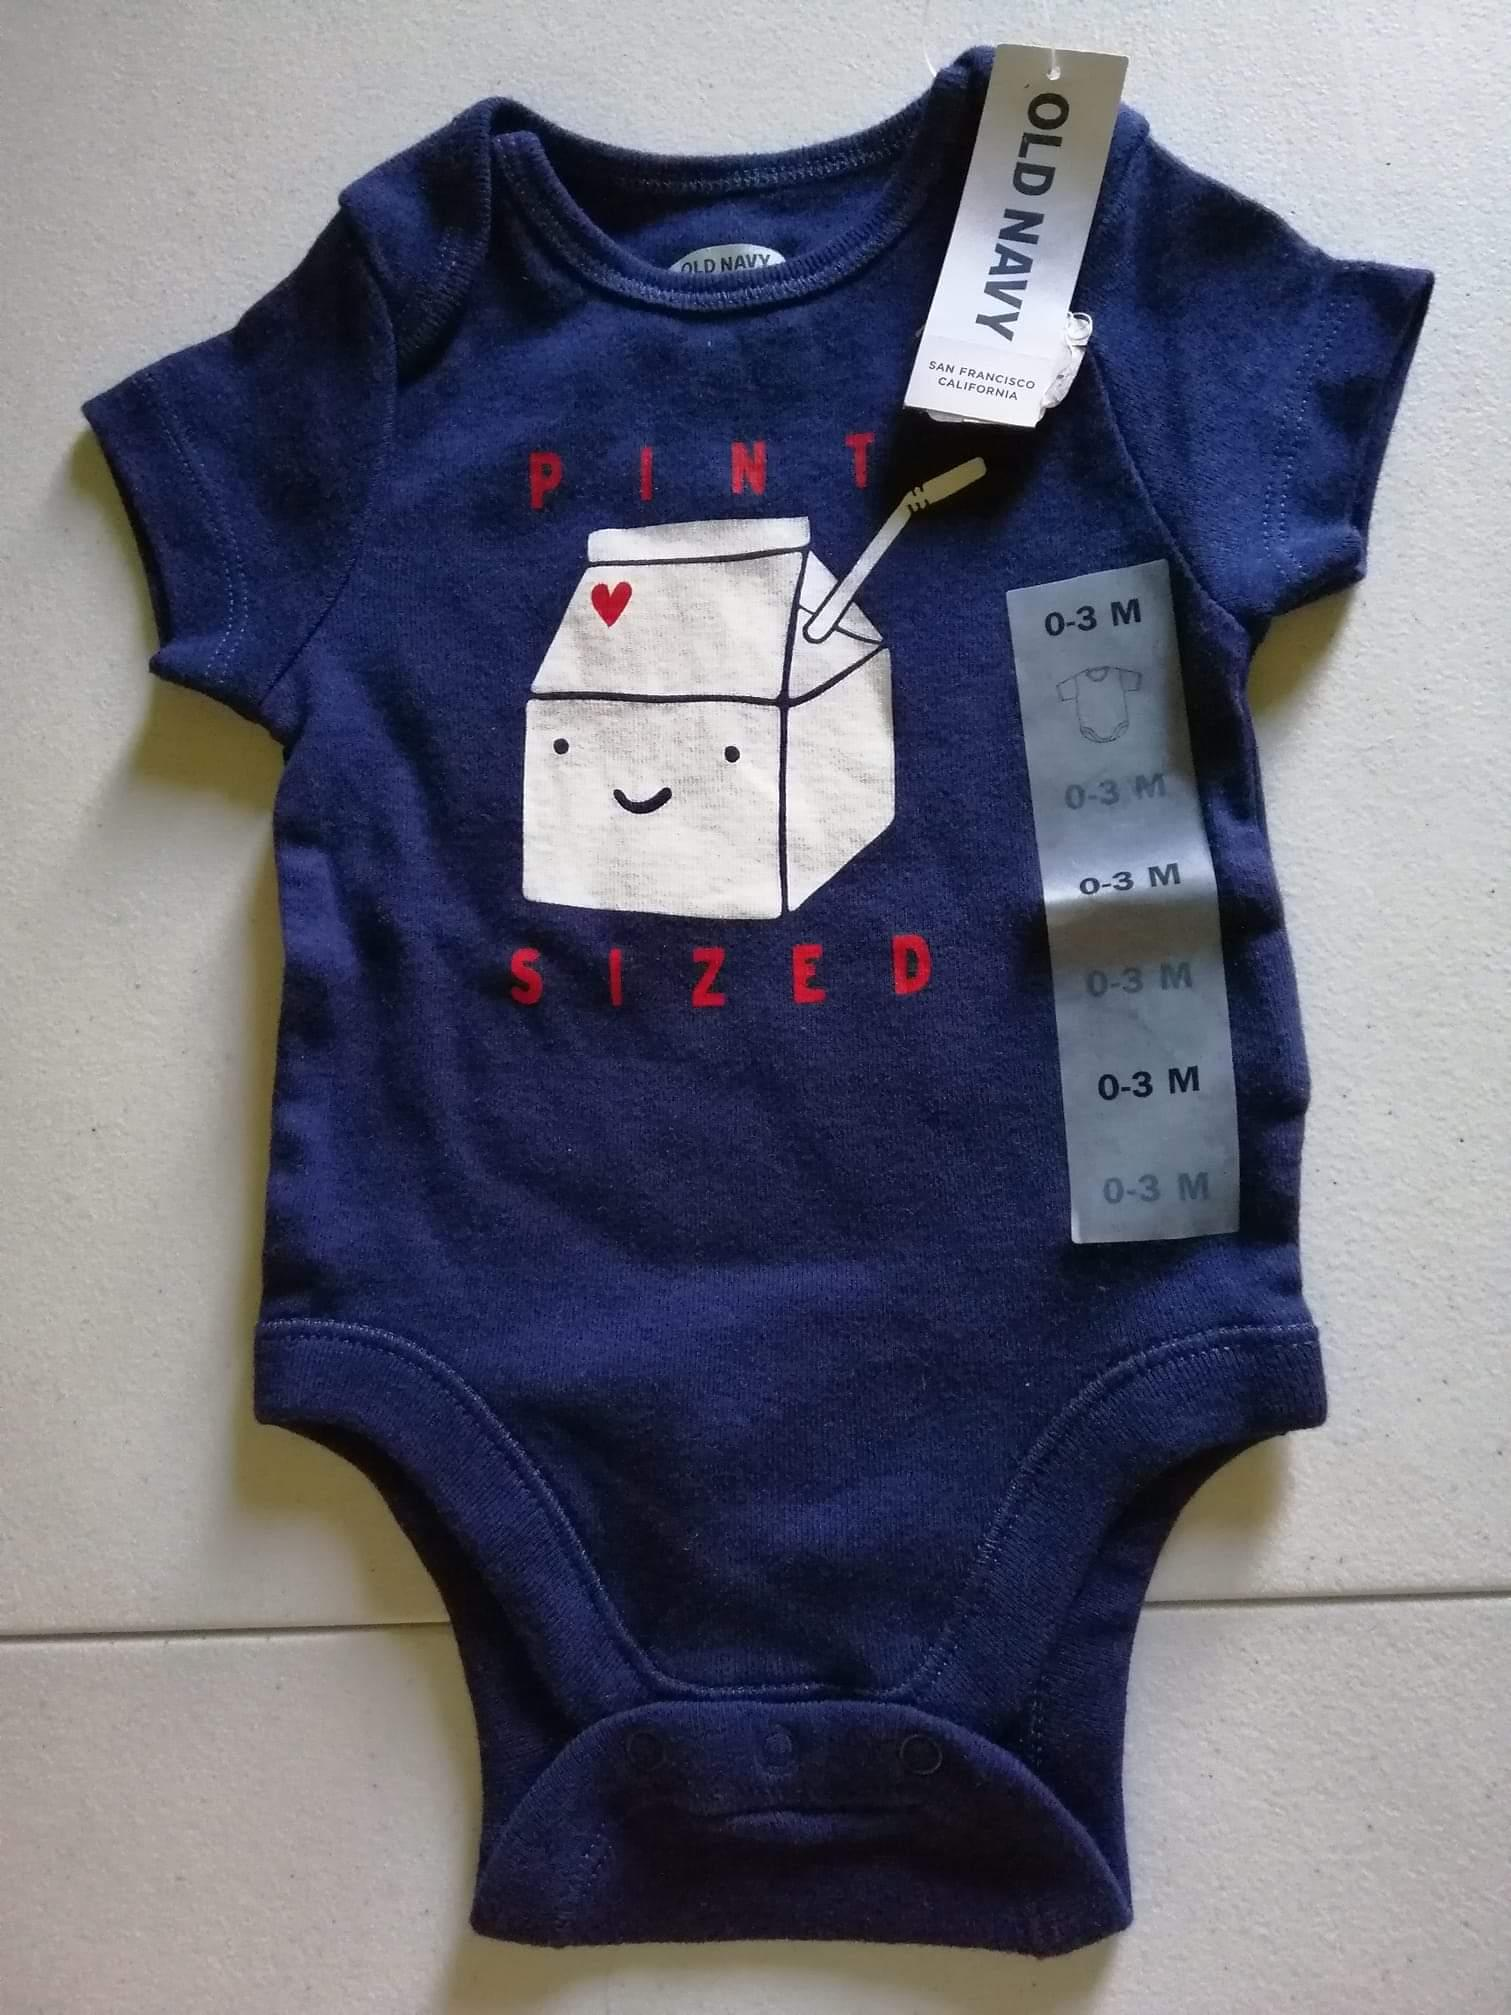 61489a40f1ab Boys Clothing for sale - Baby Clothing for Boys Online Deals ...